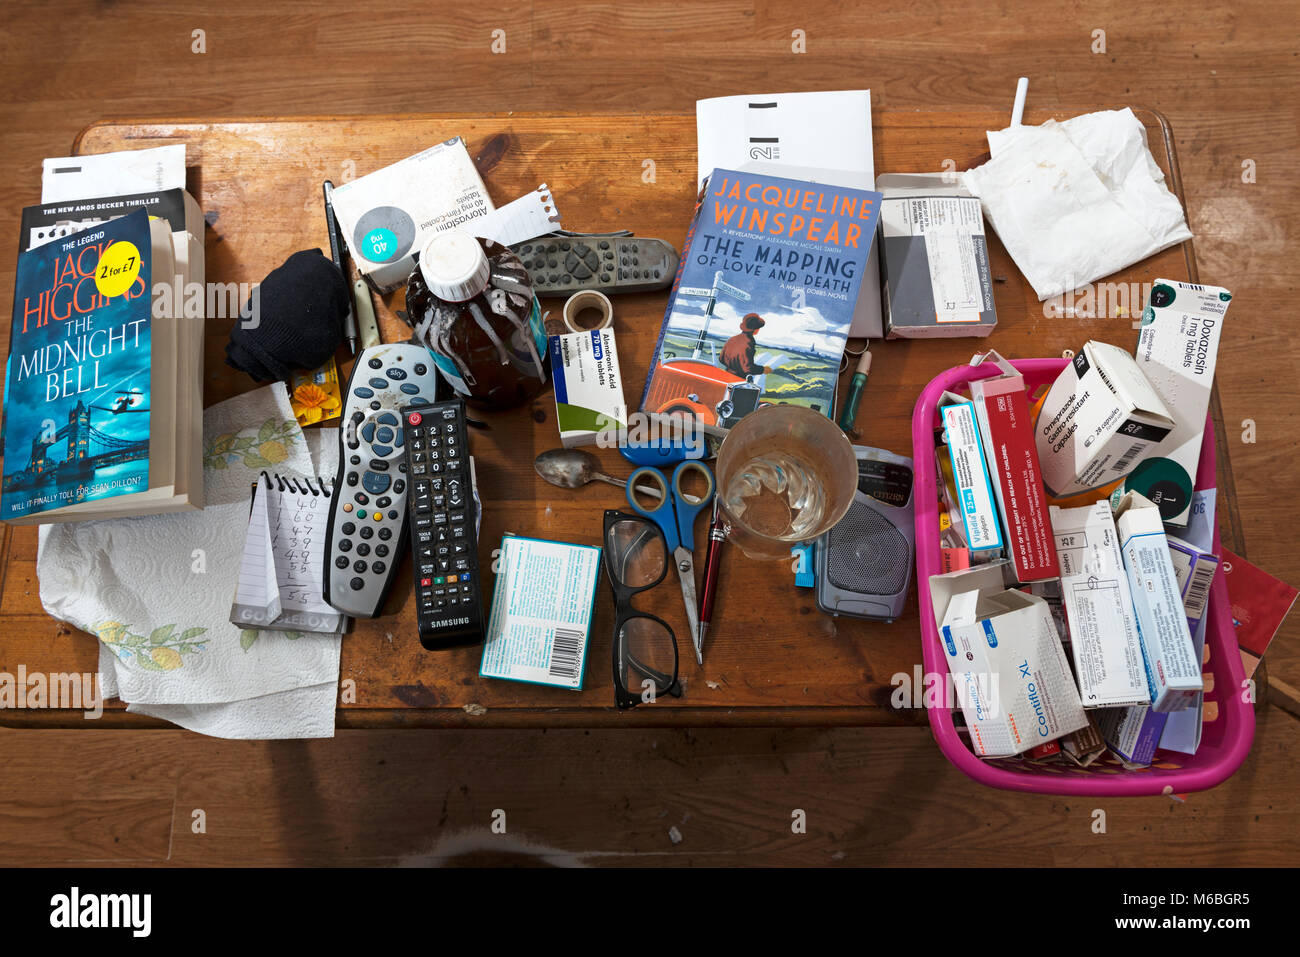 Messy coffee table - Stock Image